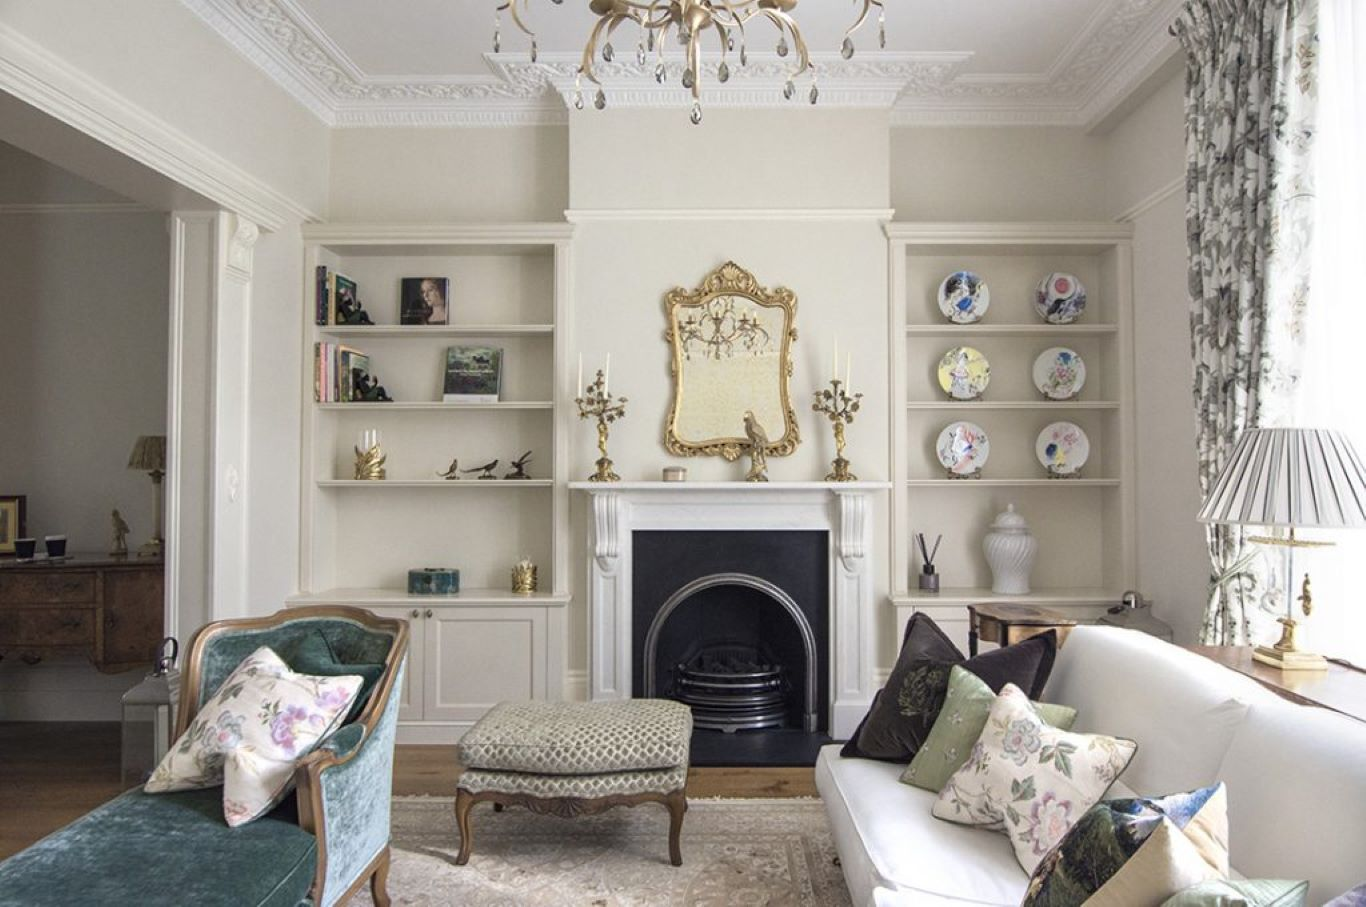 Victorian living room with chaise lounge, floral cushions  and ornately-carved mirror on wall.